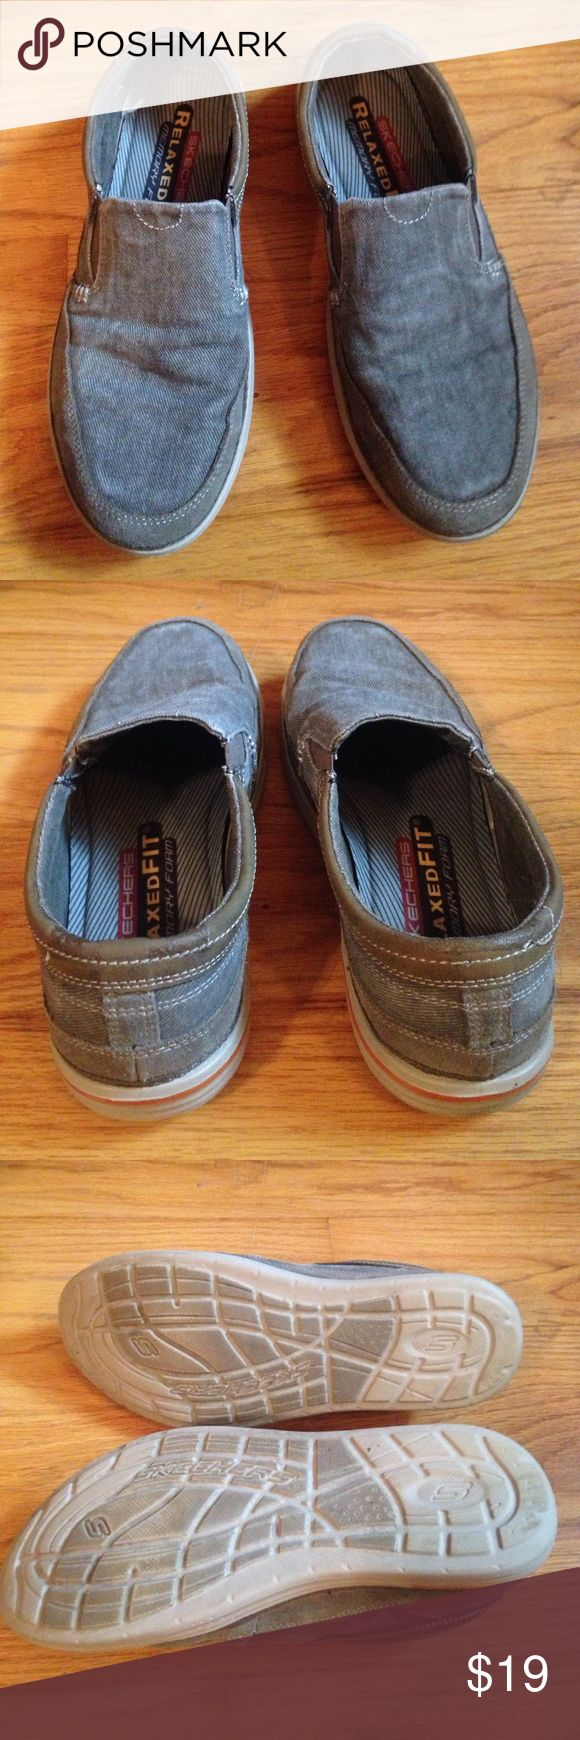 Skechers Relaxed Fit sz 9 MEN'S slip on shoes Skechers Relaxed Fit sz 9 MEN'S slip on shoes. Memory foam insole. Textile and leather upper. Very comfortable. Gray and brown upper with tan and orange rubber sole. Skechers Shoes Loafers & Slip-Ons